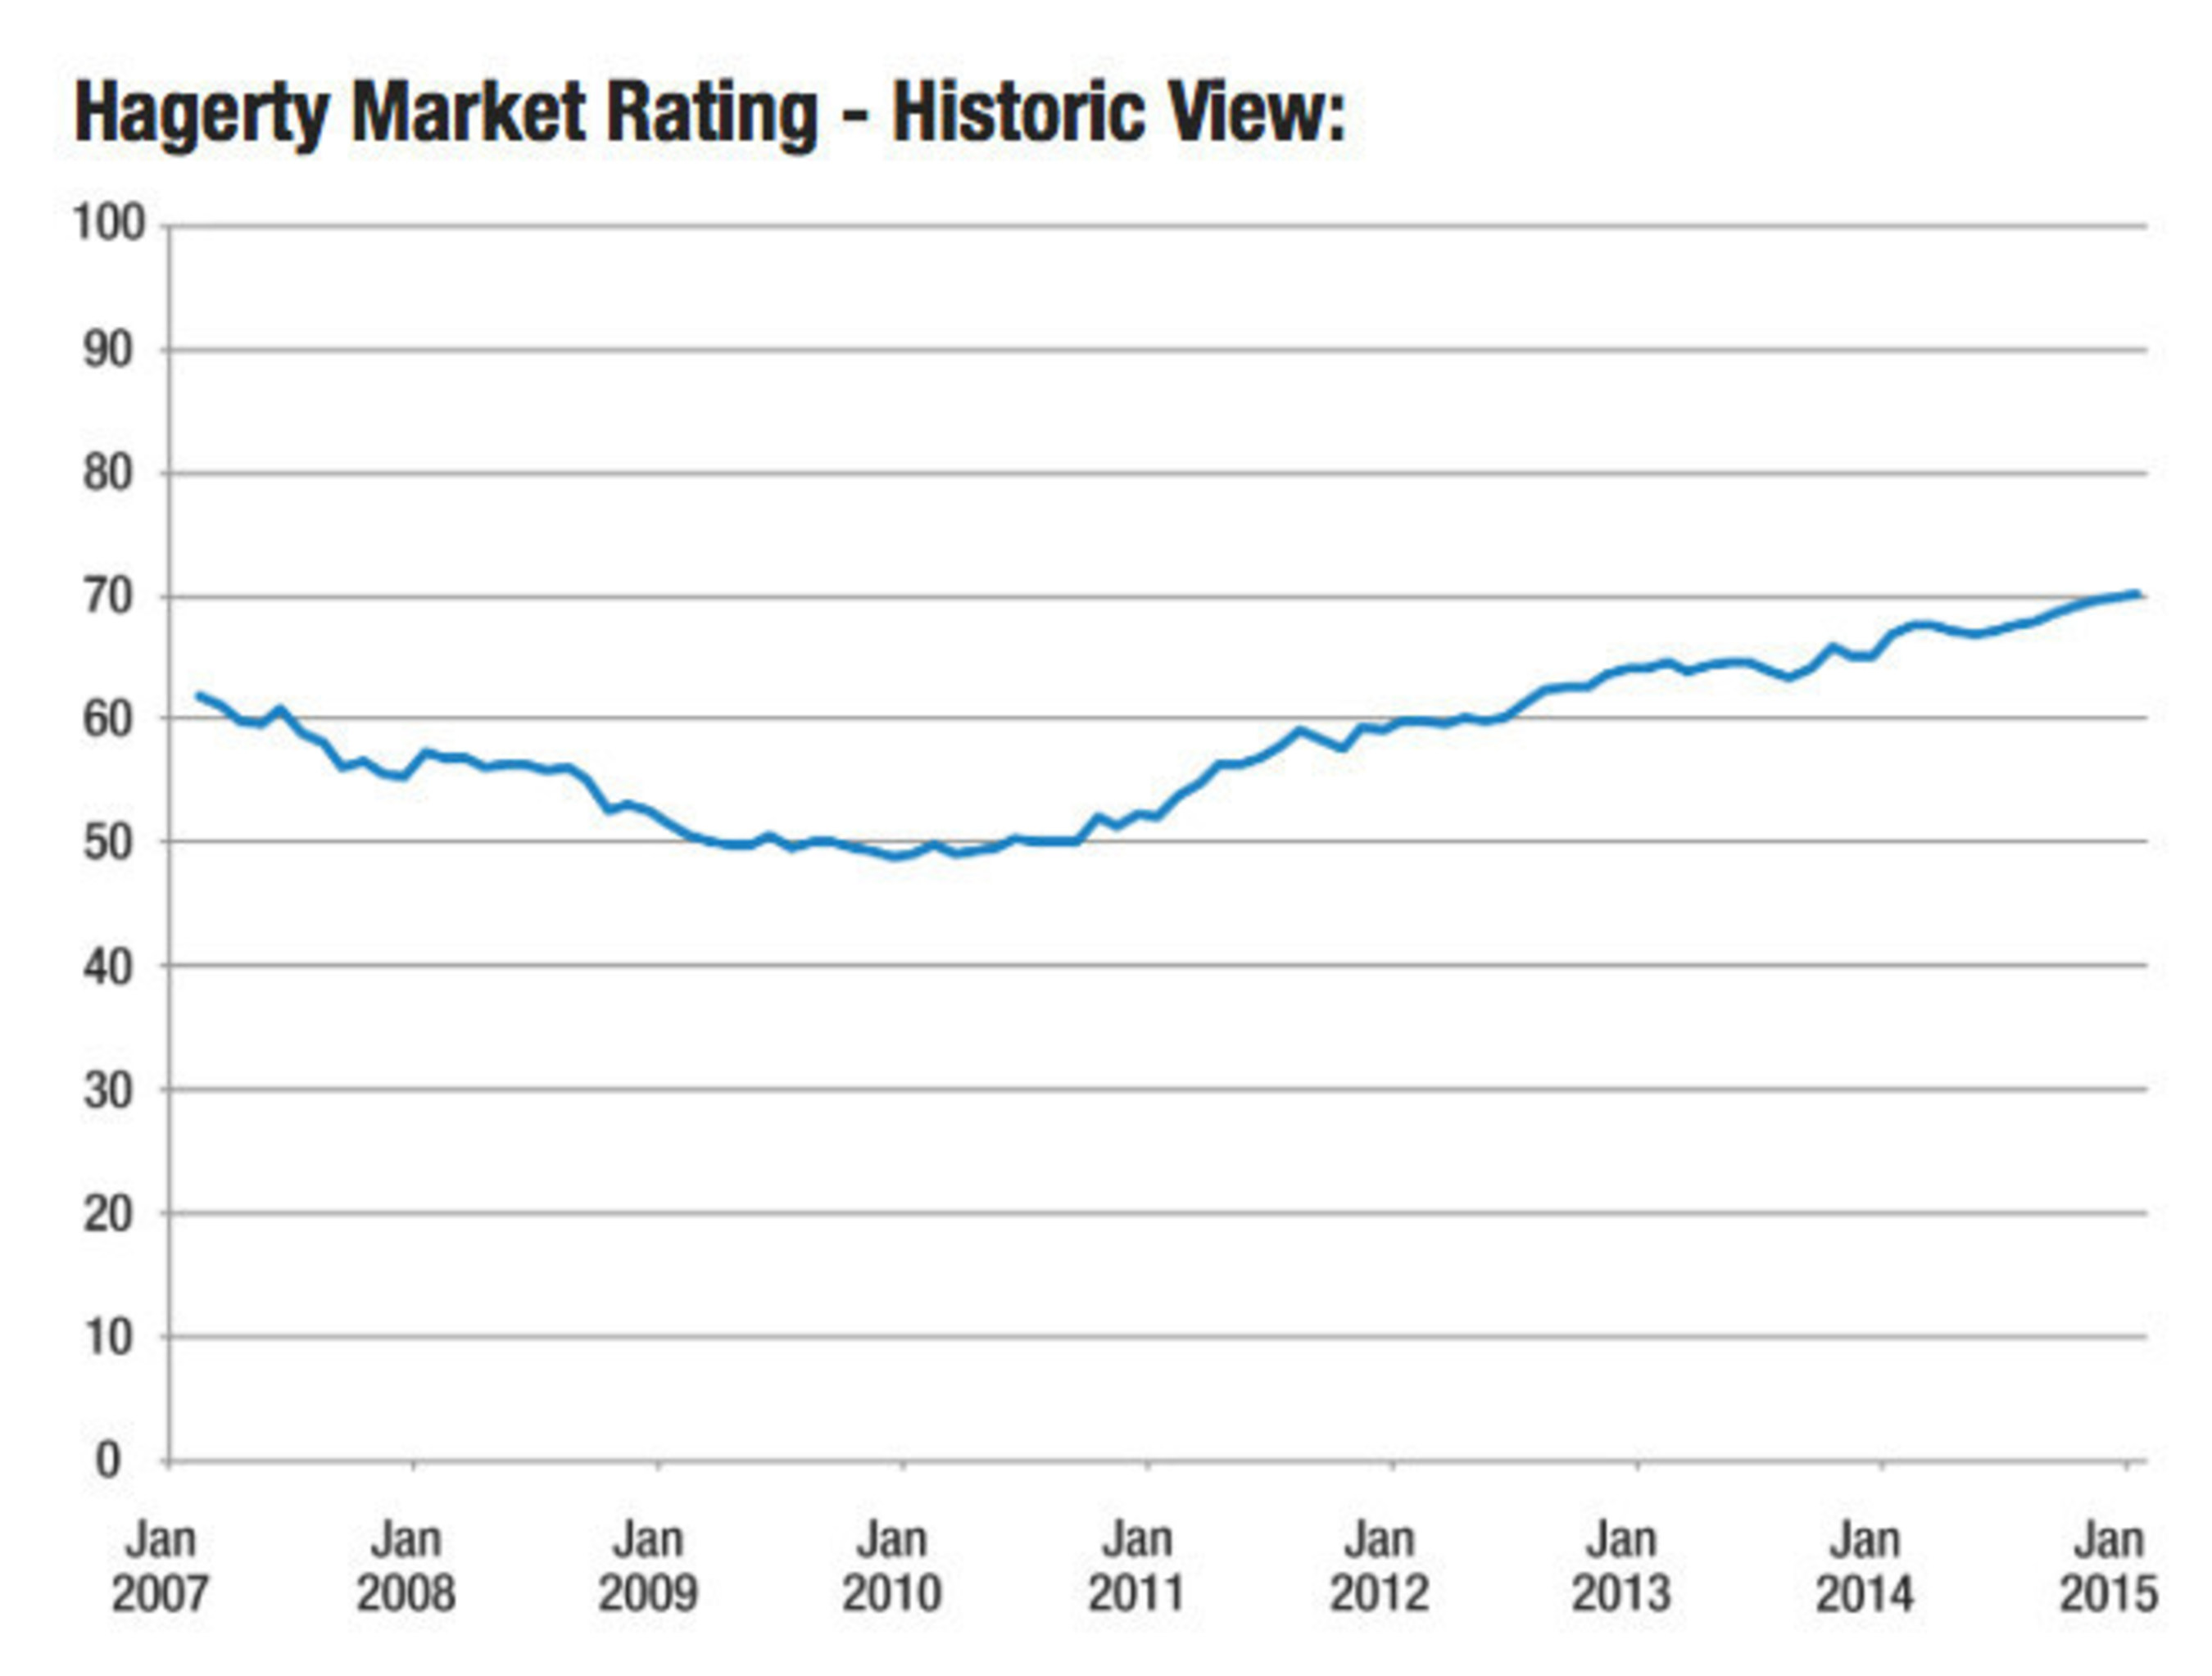 Hagerty Introduces New Market Rating To Measure Strength Of The ...